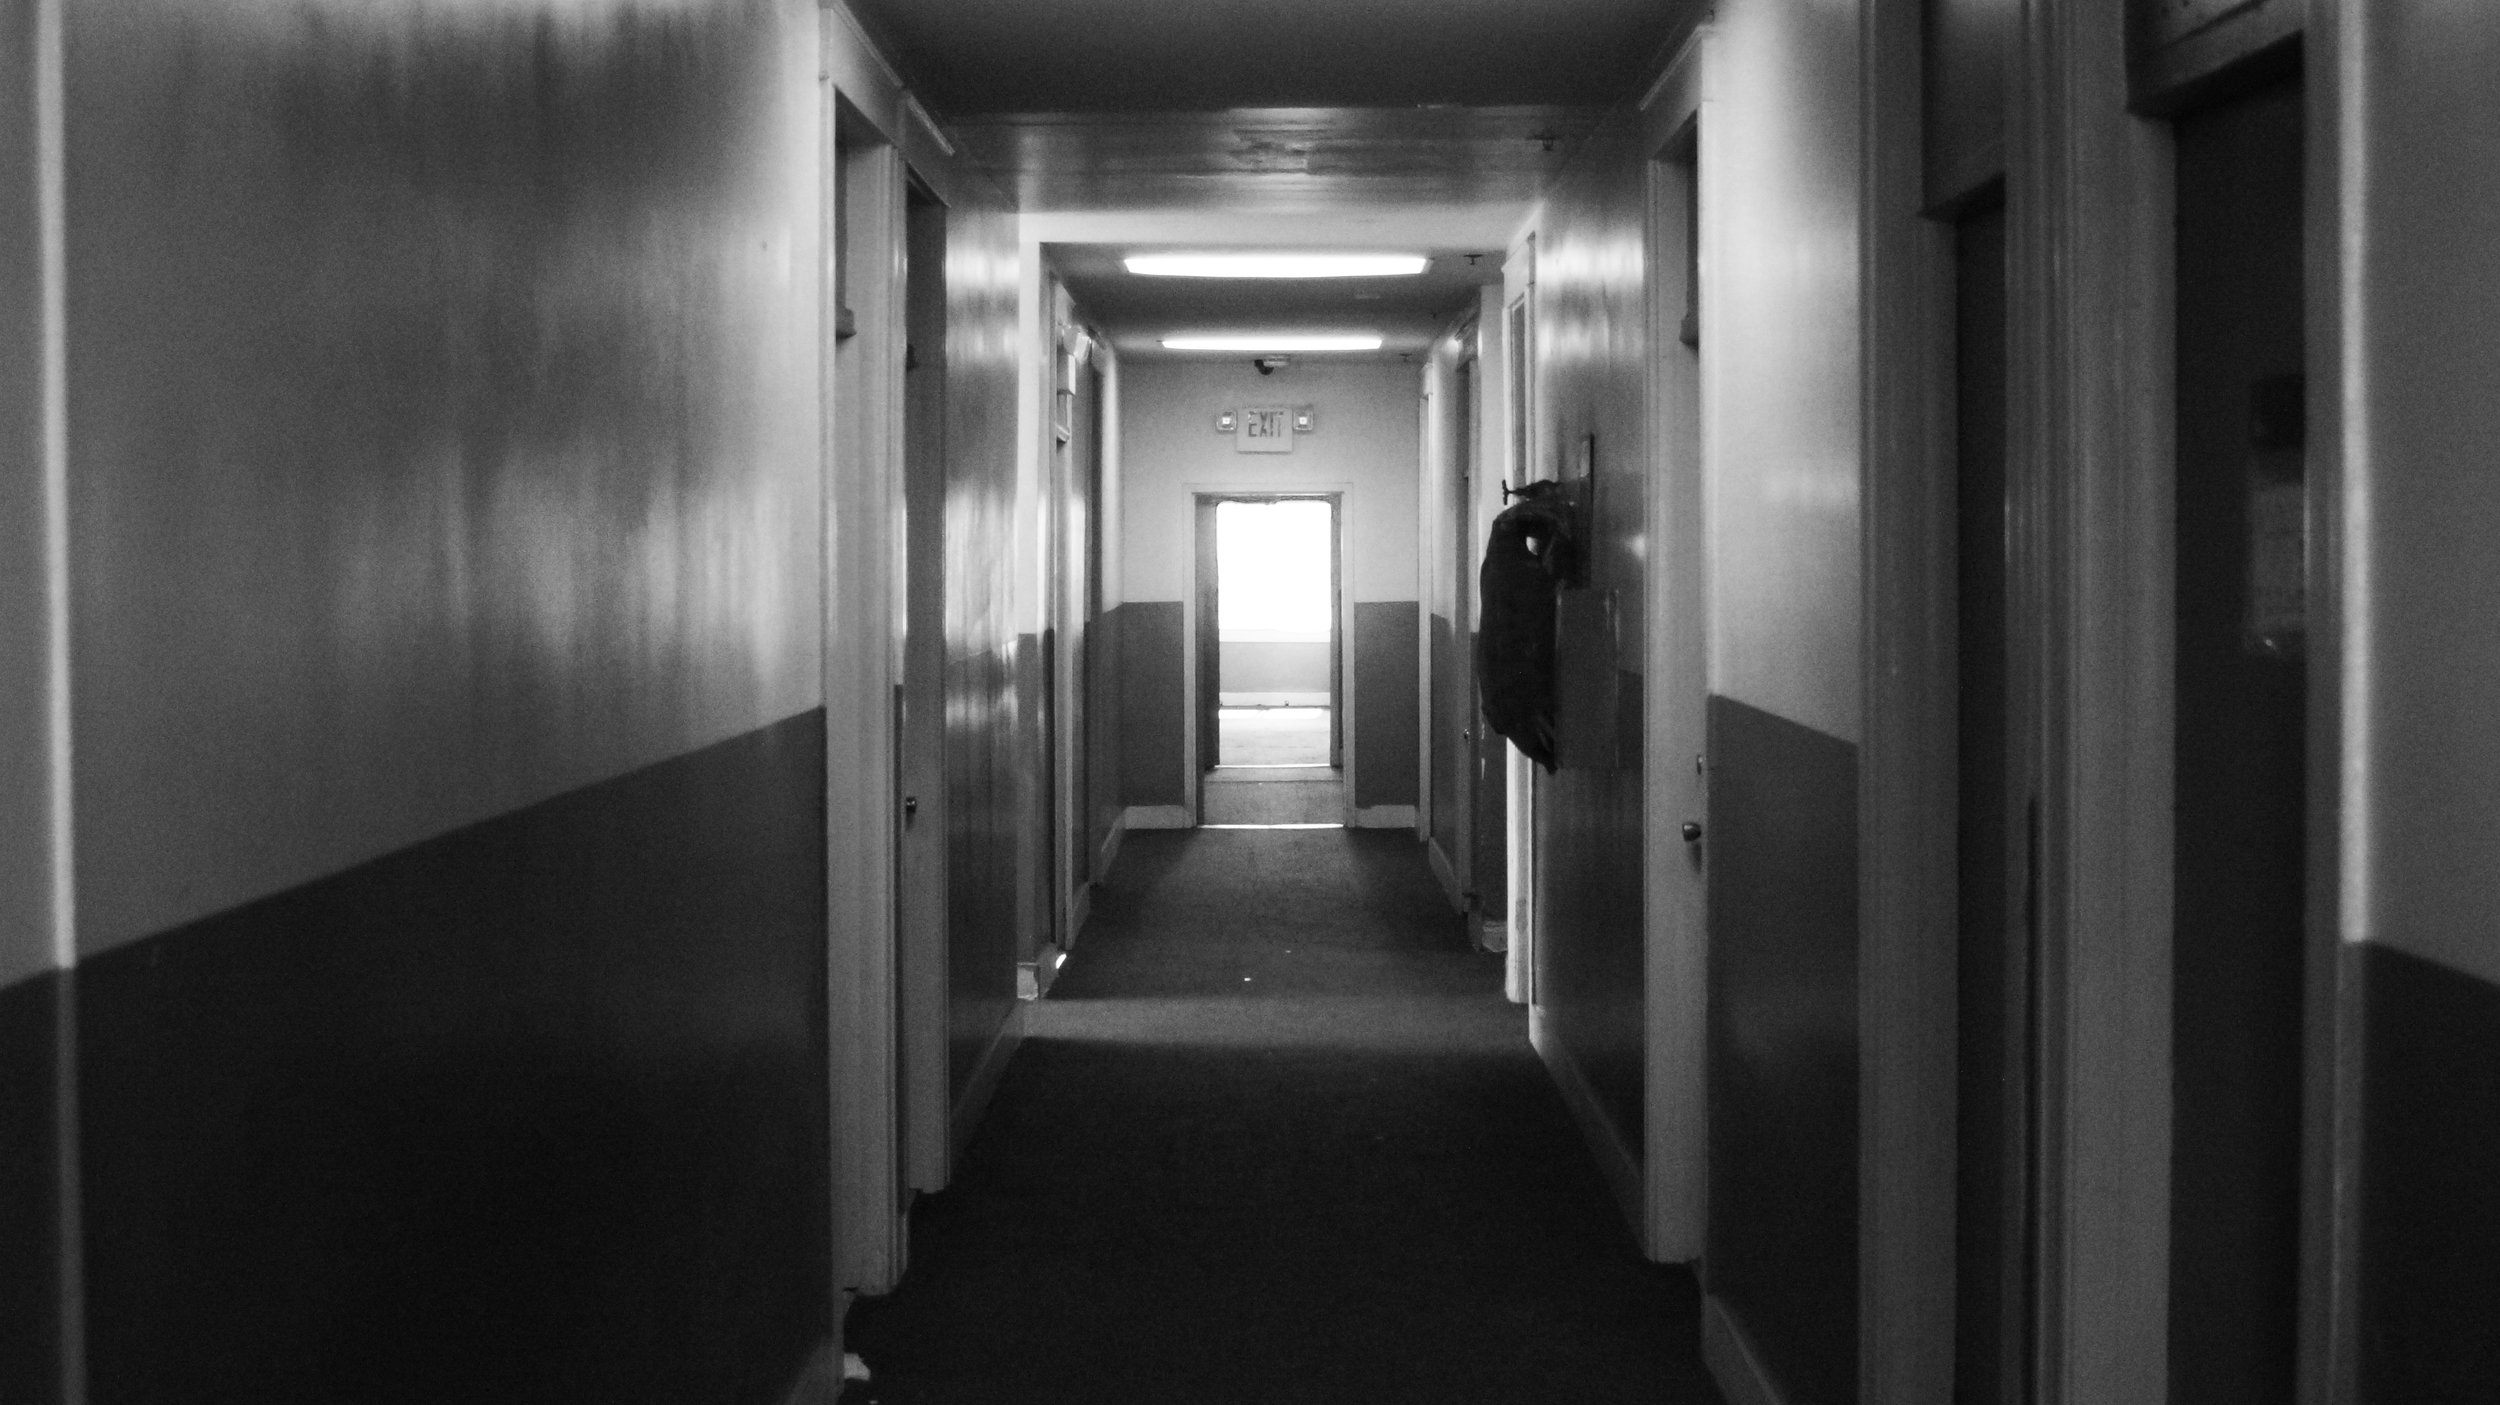 Picture of the hallway in my building that used to be a hotel. v.stephen